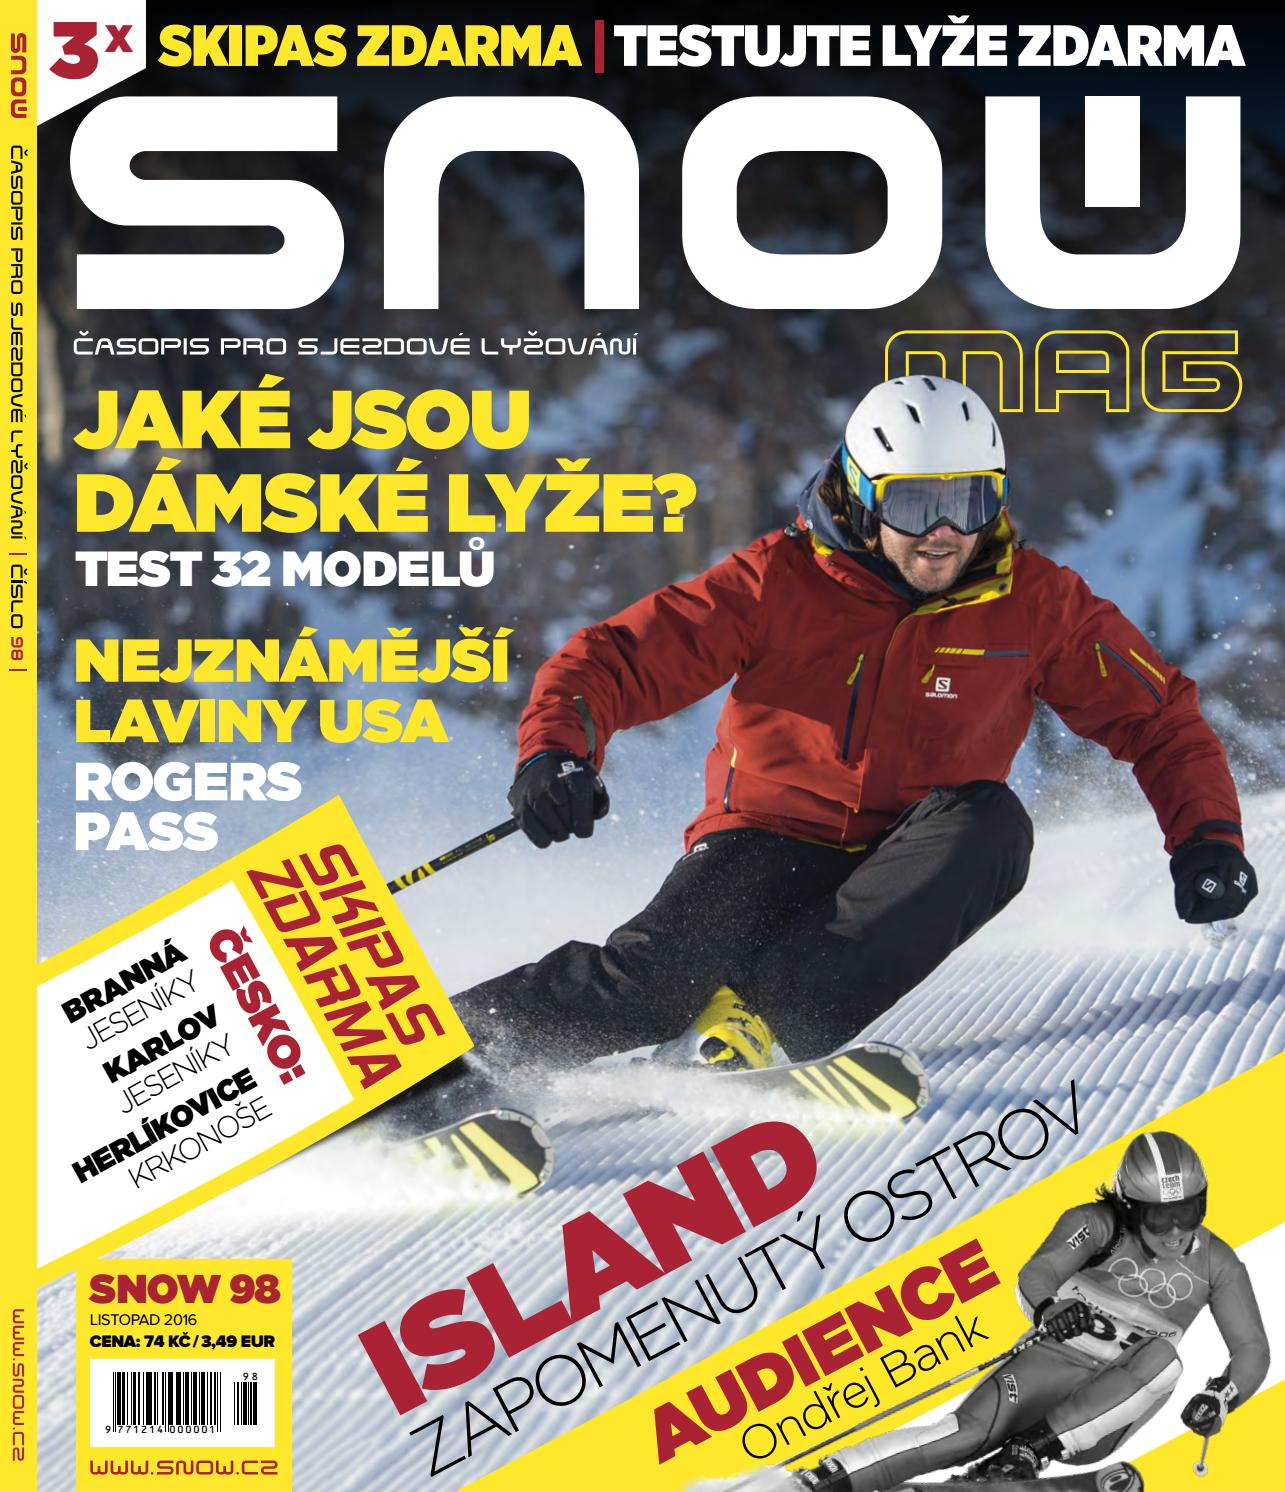 SNOW 98 - listopad 2016 by SNOW CZ s.r.o. - issuu 649b90b7ba